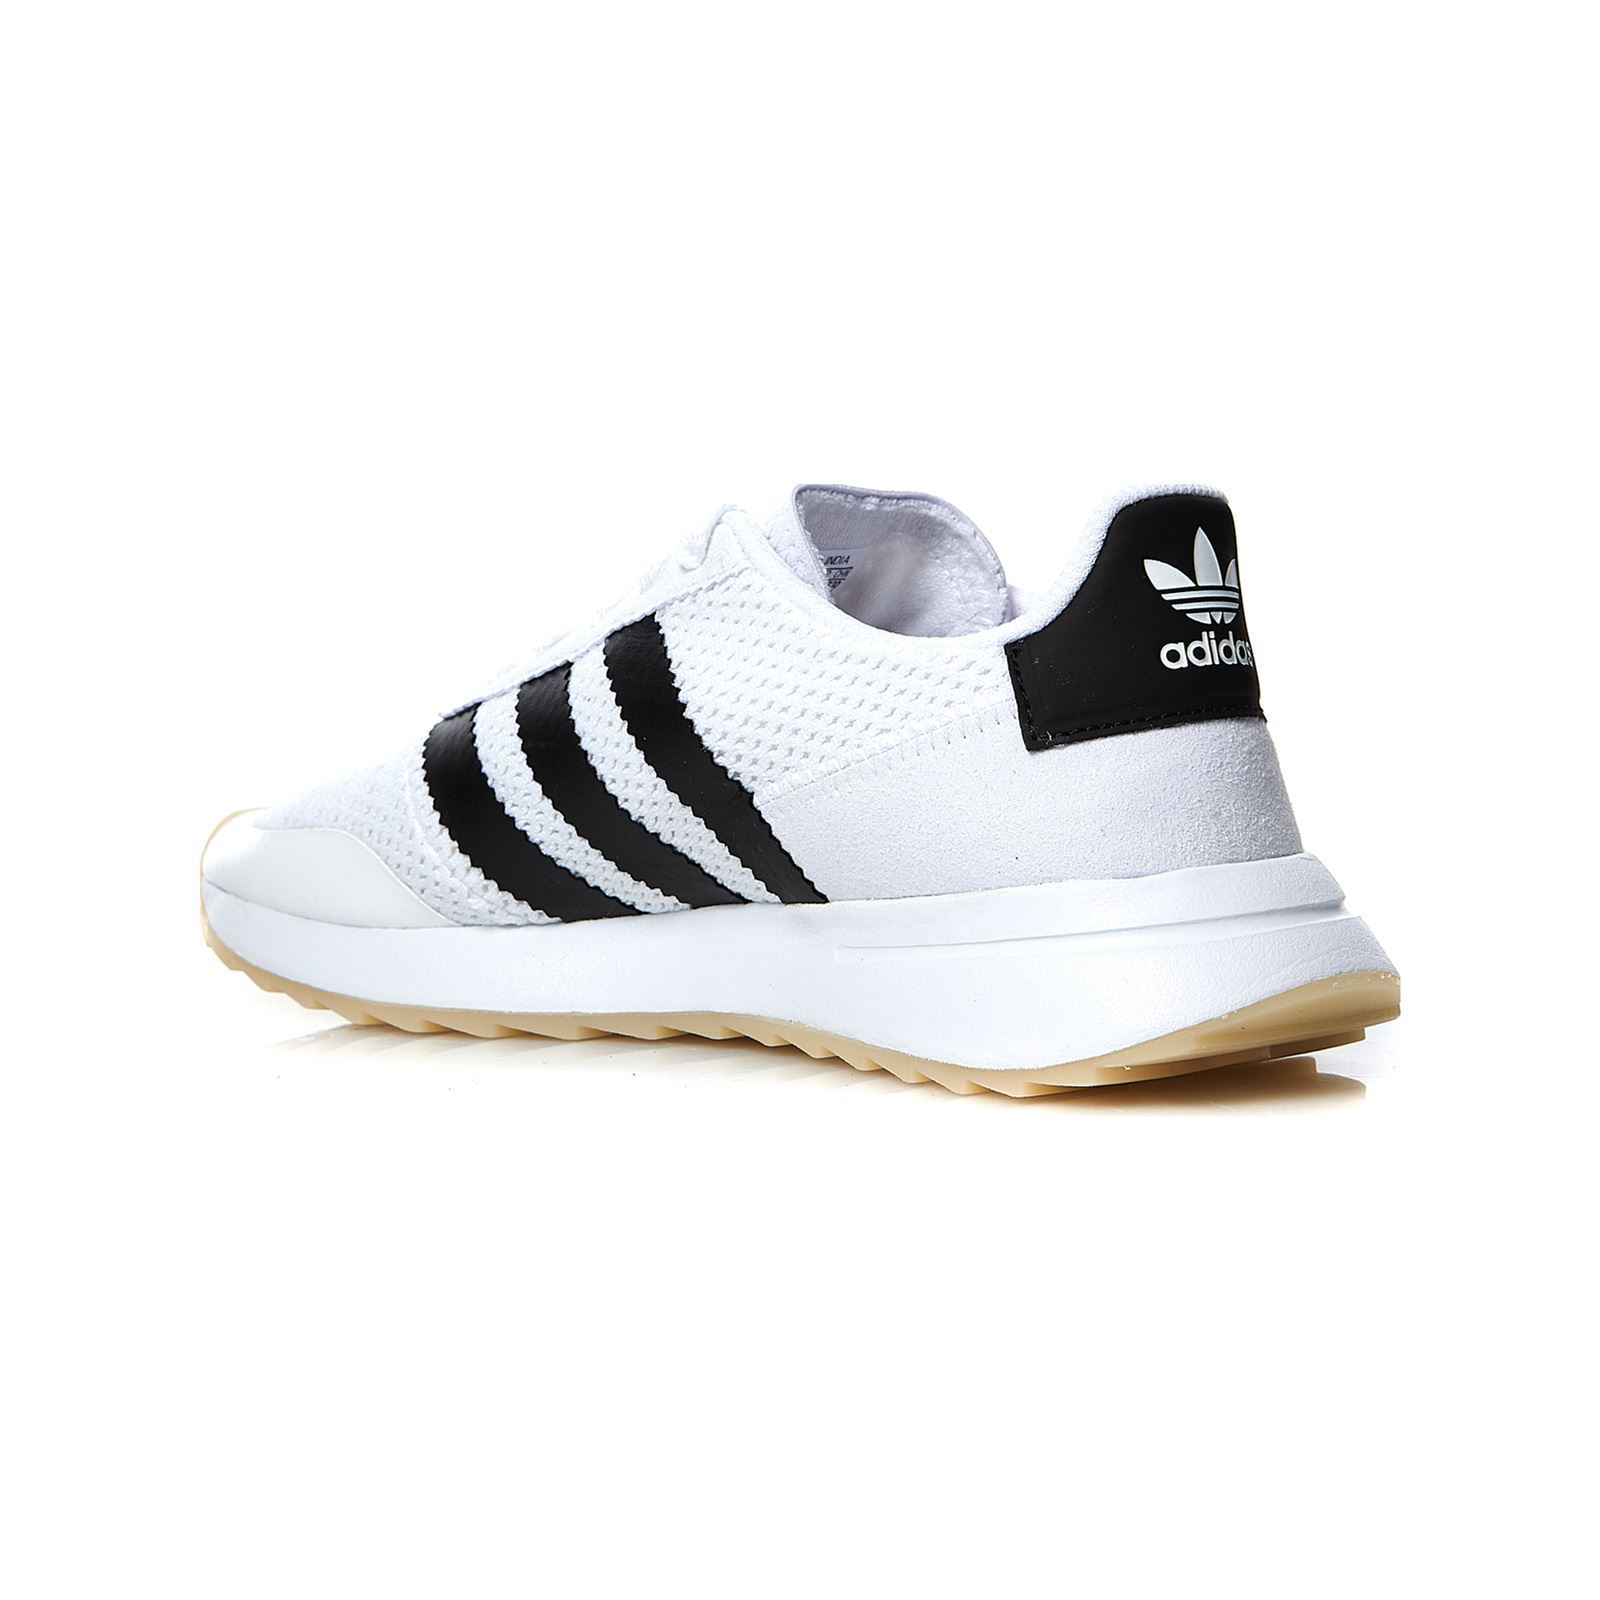 Baskets W Adidas Flb BlancBrandalley Originals jqzVGLUpMS